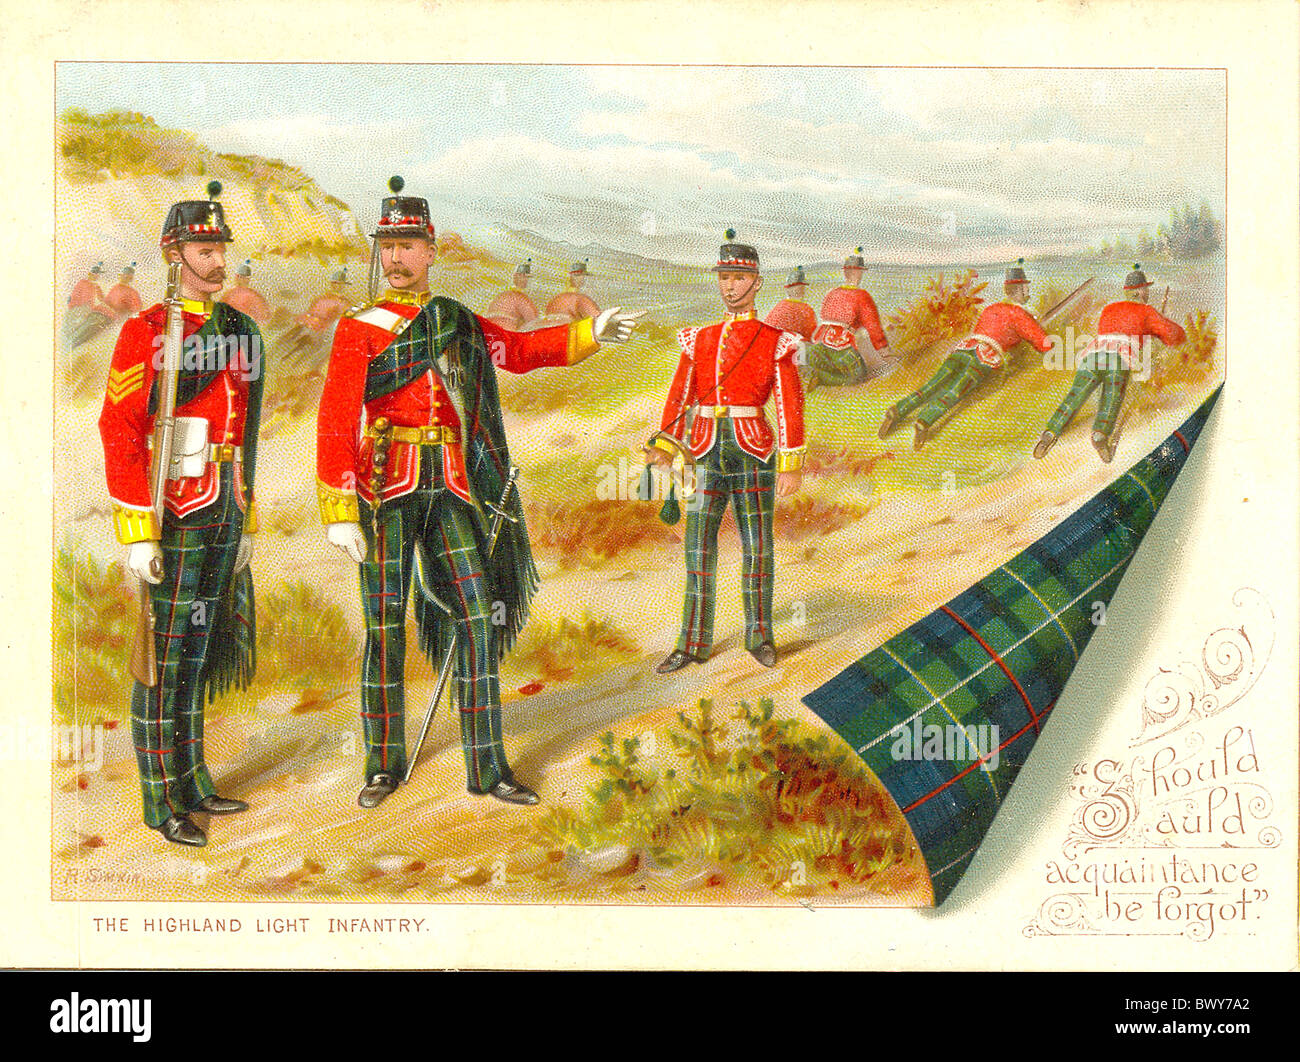 Christmas greeting card of The Highland Light Infantry - Stock Image